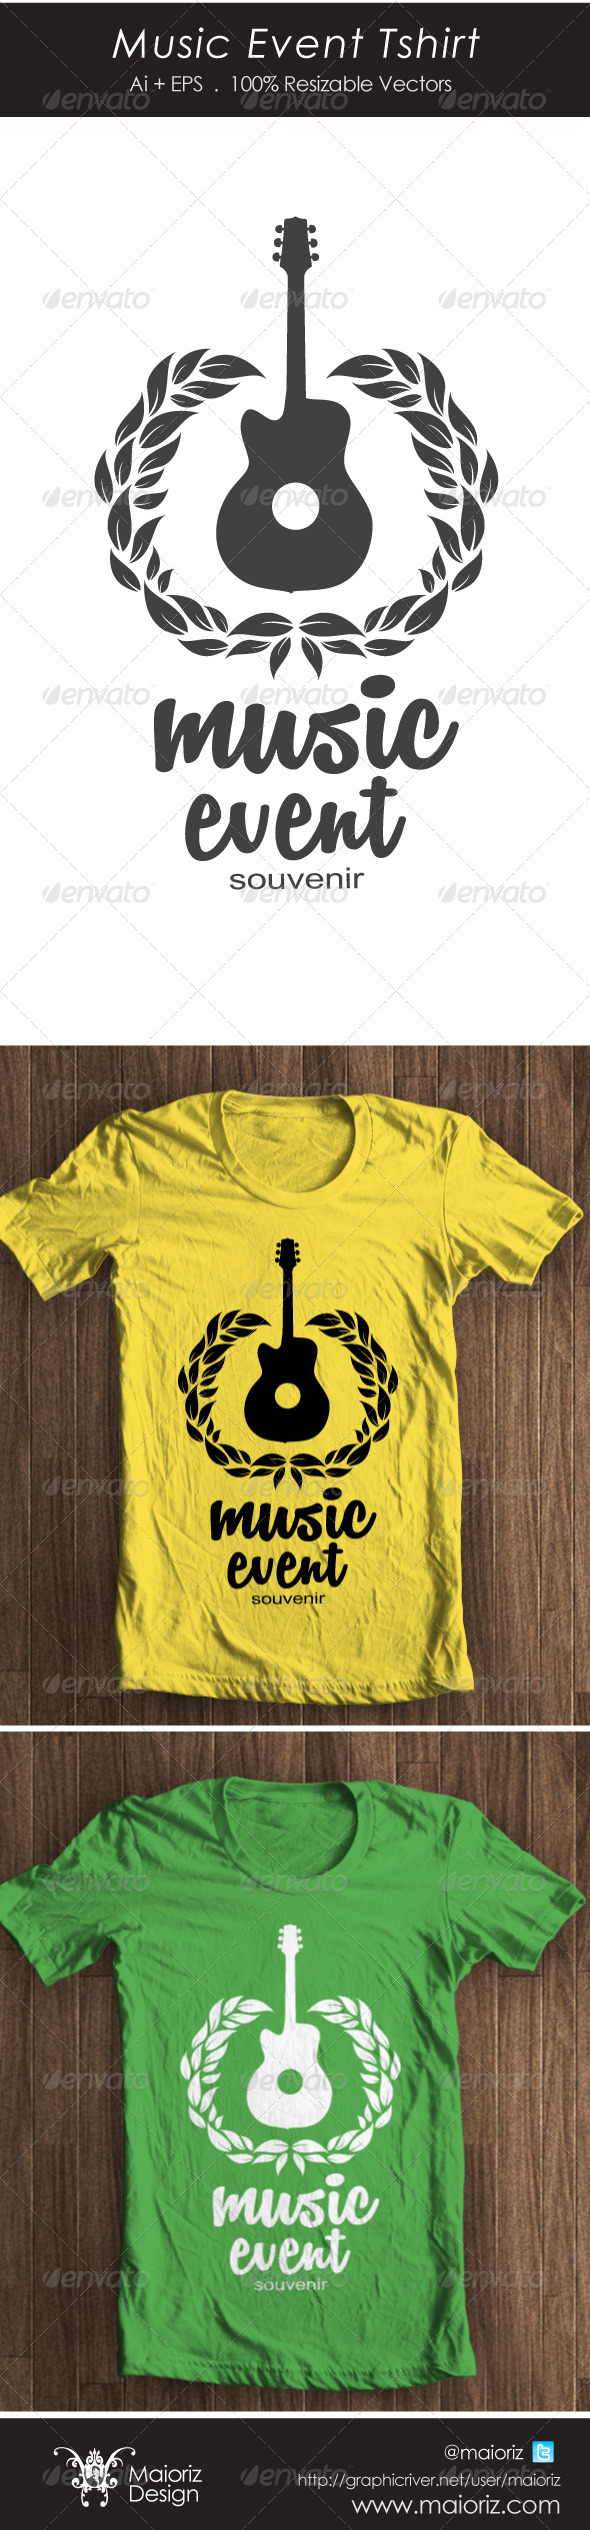 GraphicRiver Music Event Tshirt 4385115